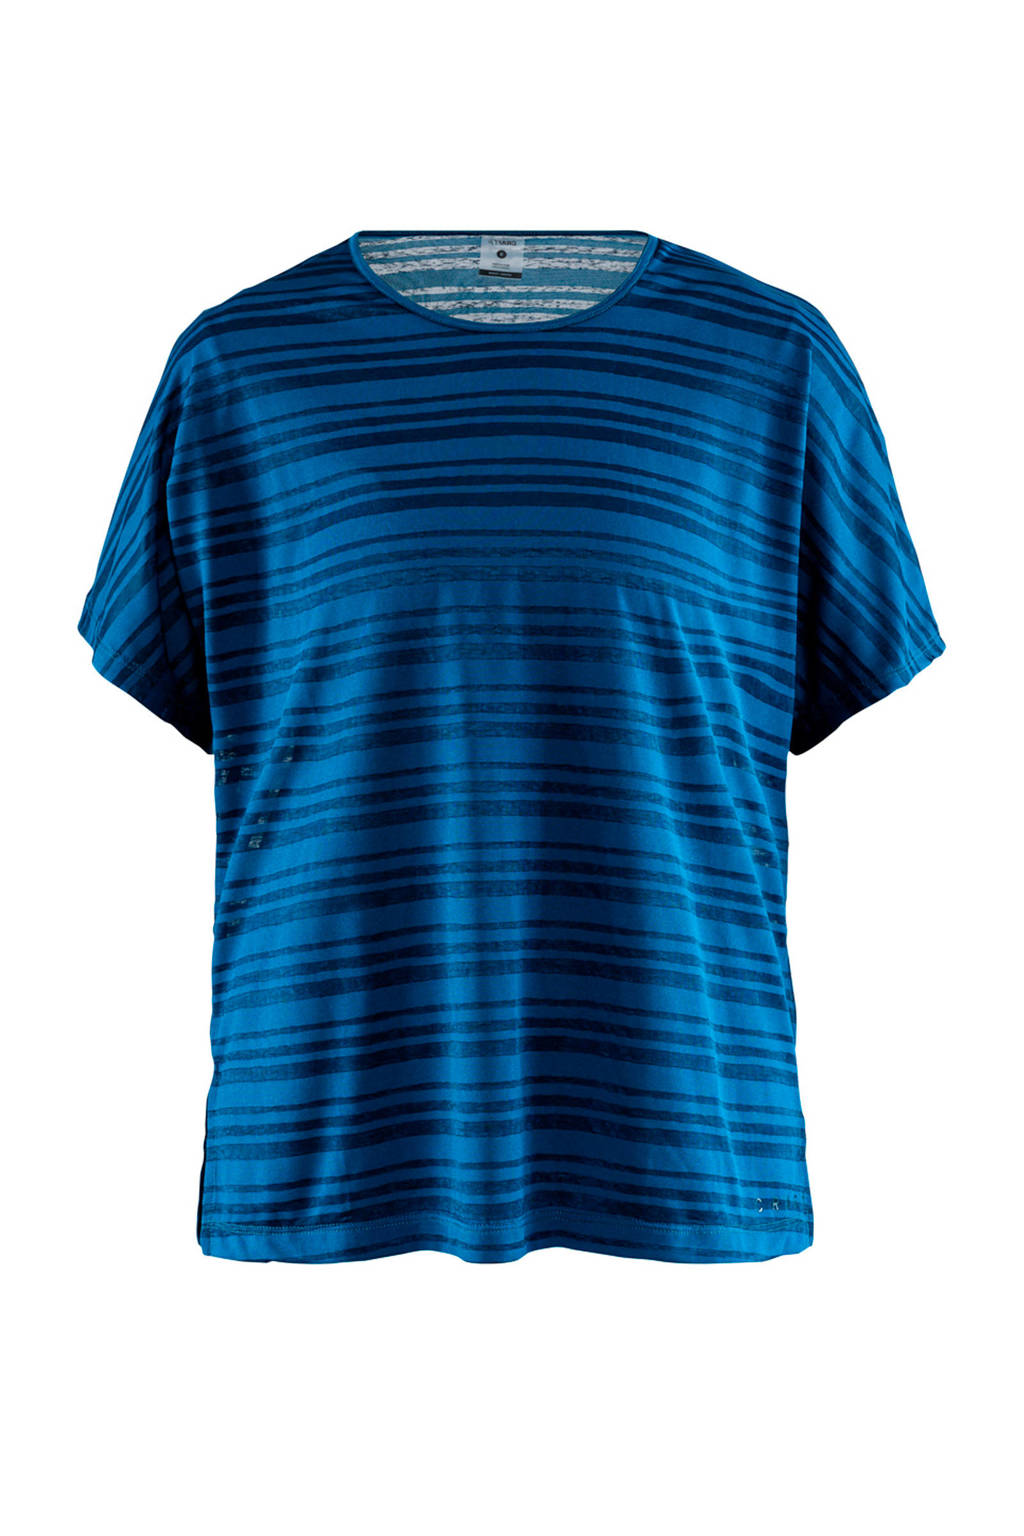 Craft sport T-shirt met all over streepprint blauw, Blauw